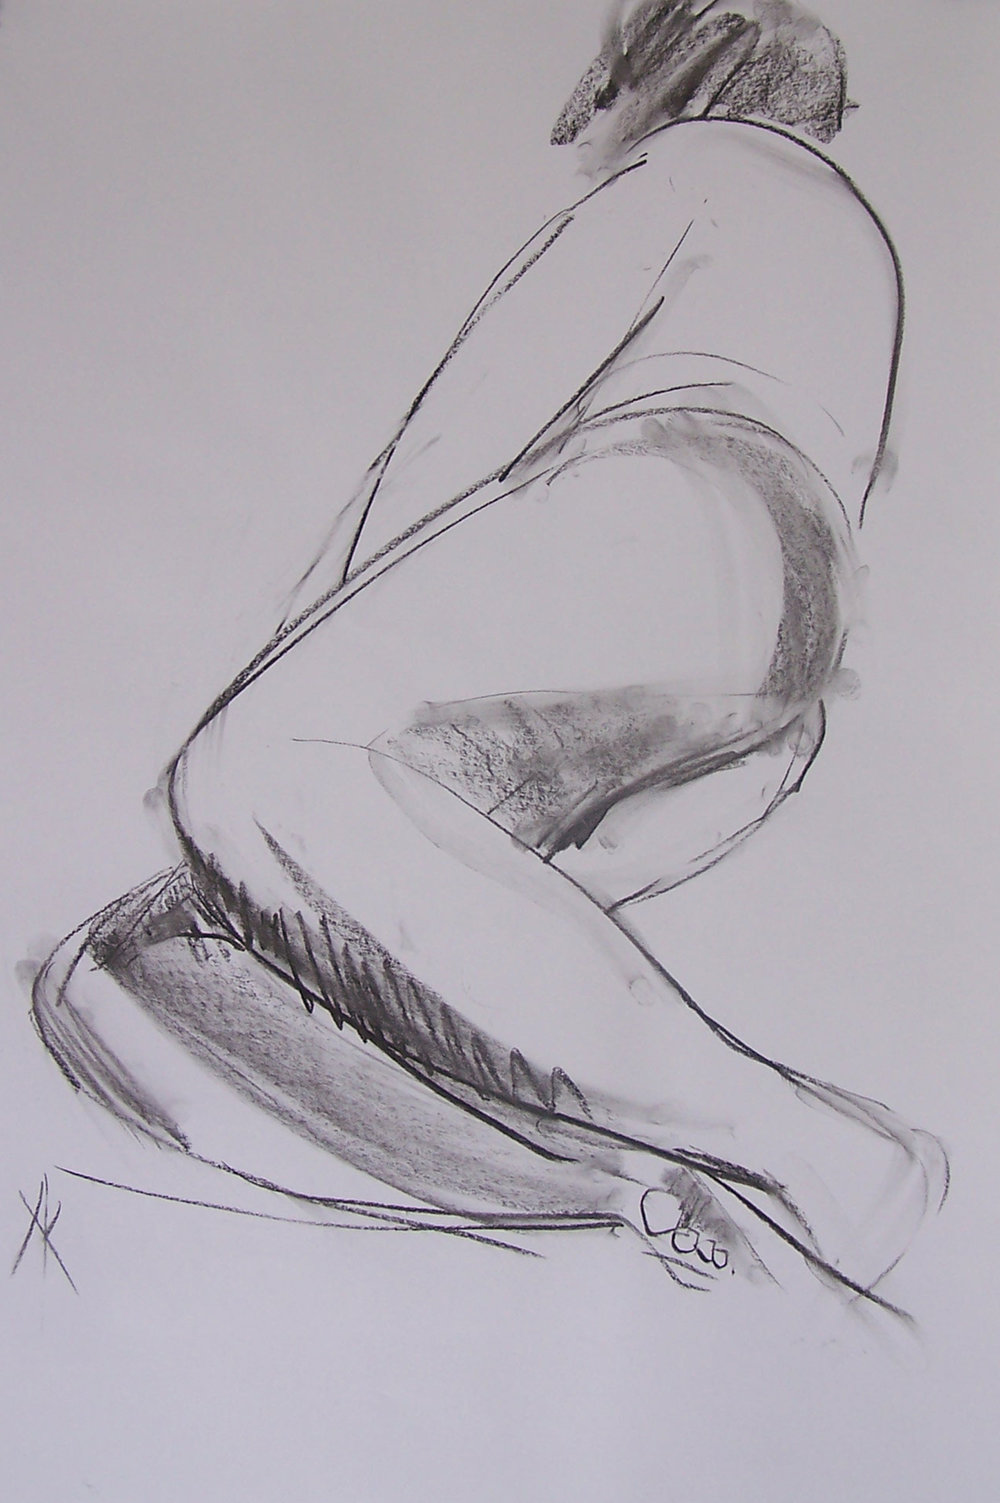 TITLE:  Less is more  MEDIUM: Charcoal, ink on paper DIMENSIONS: H102 x W77cm  FRAMED